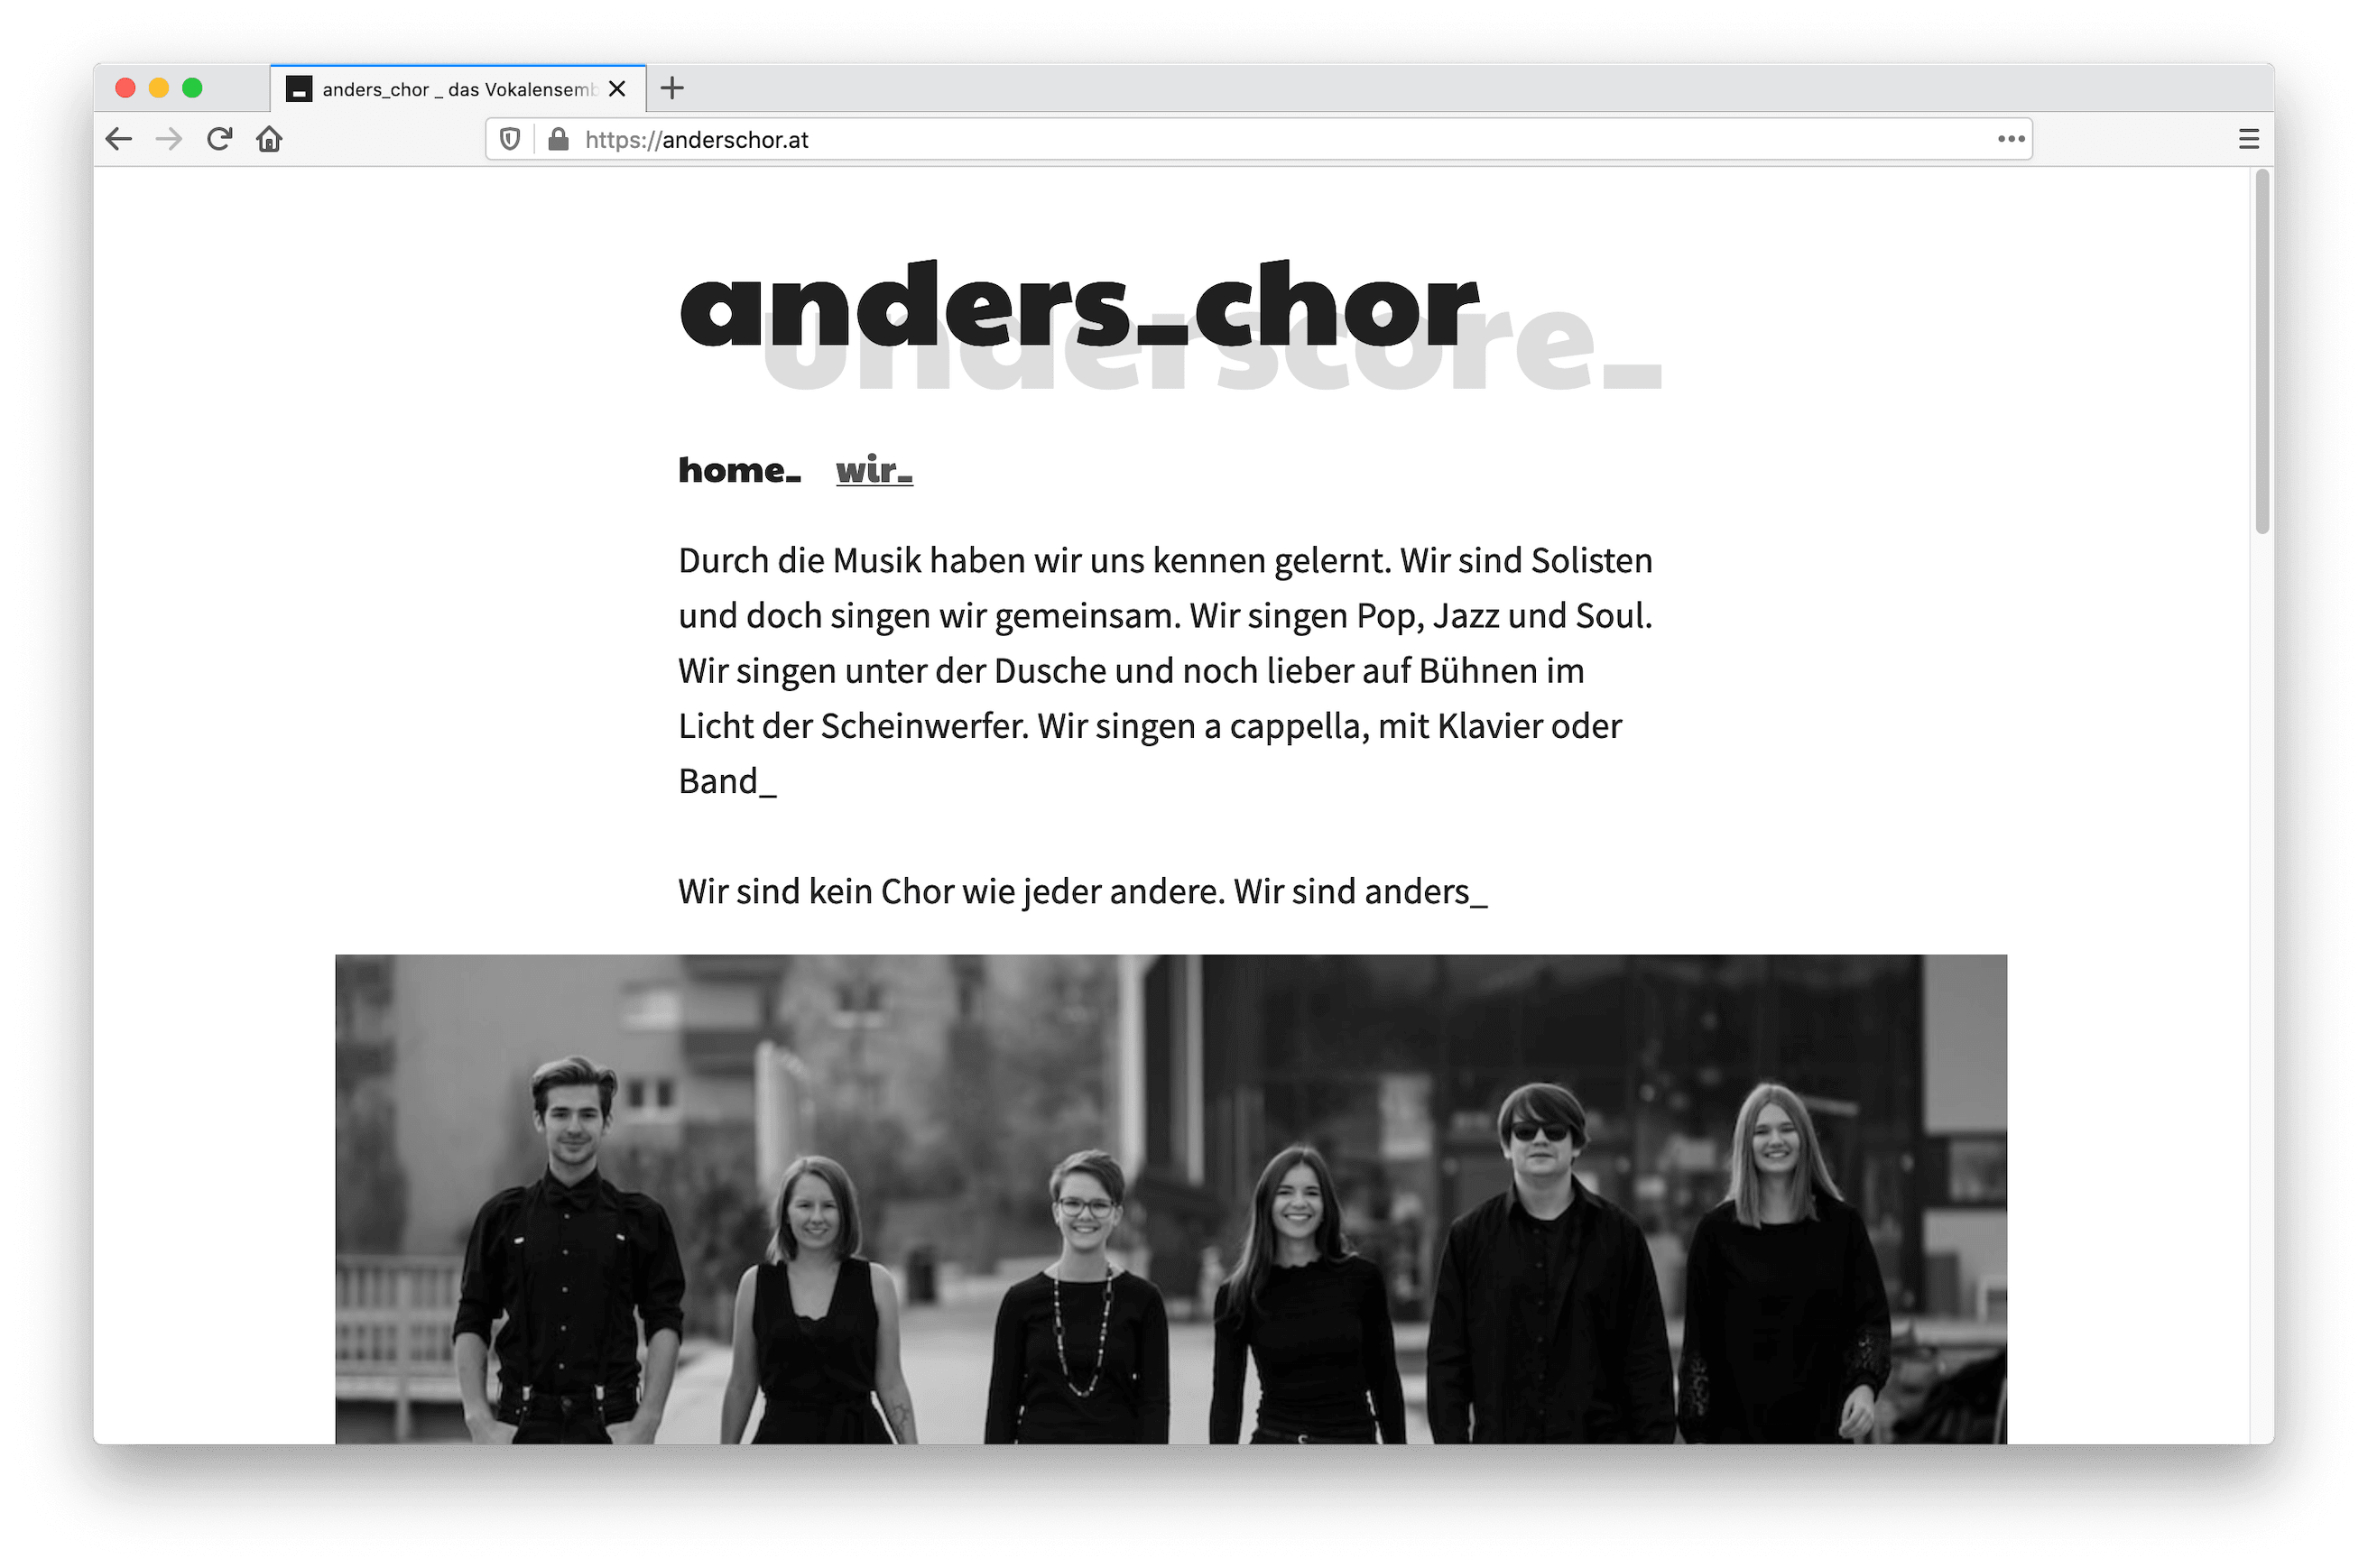 anders_chor Website screenshot